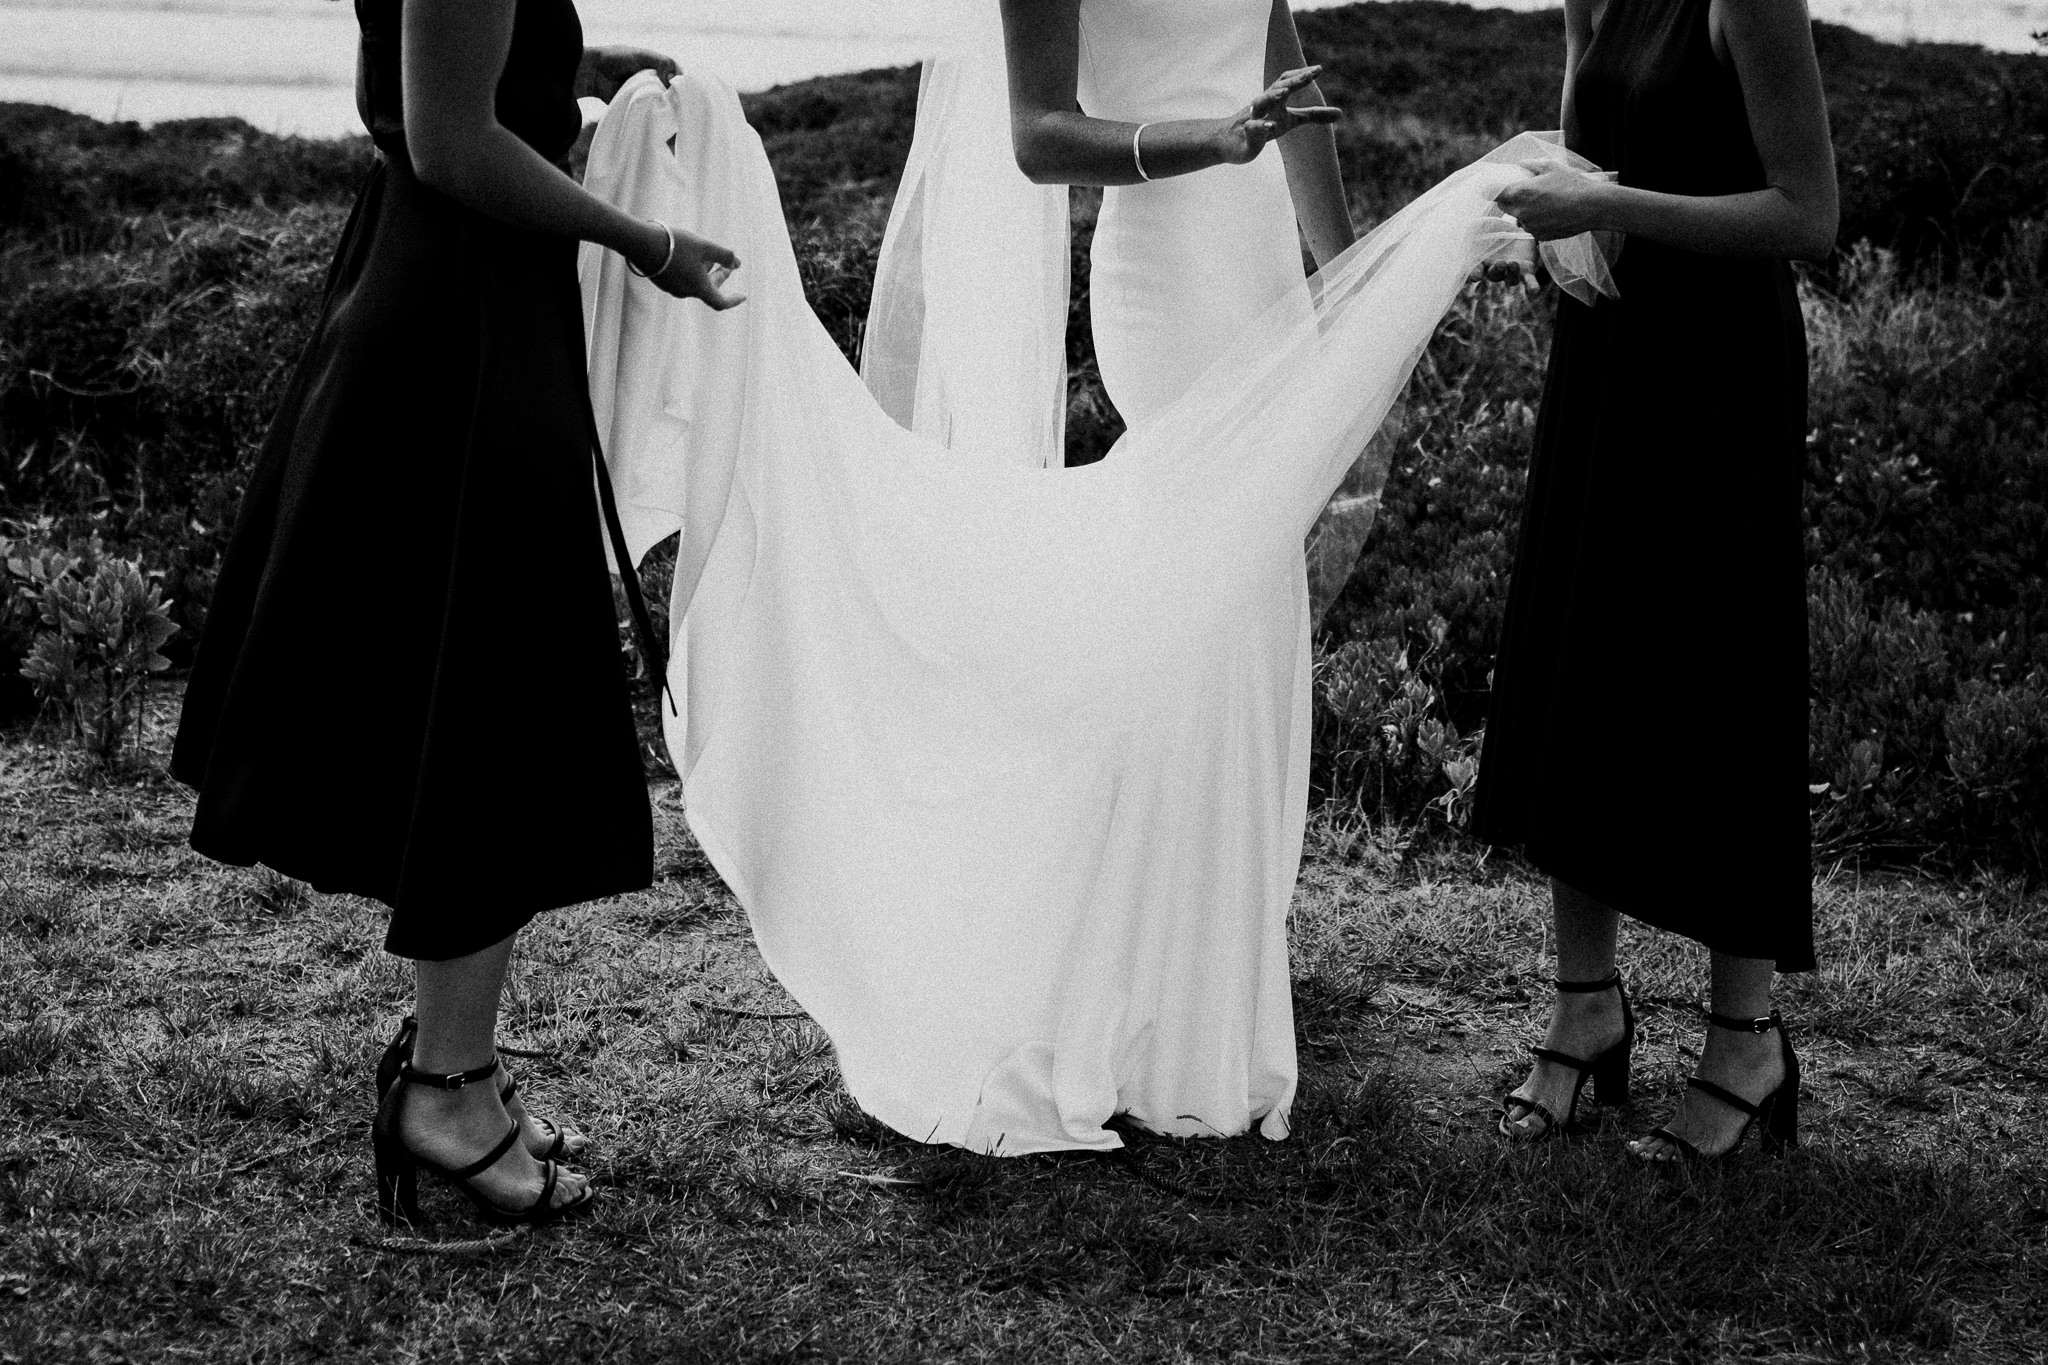 Bridesmaids straightening out bride's dress before wedding photos